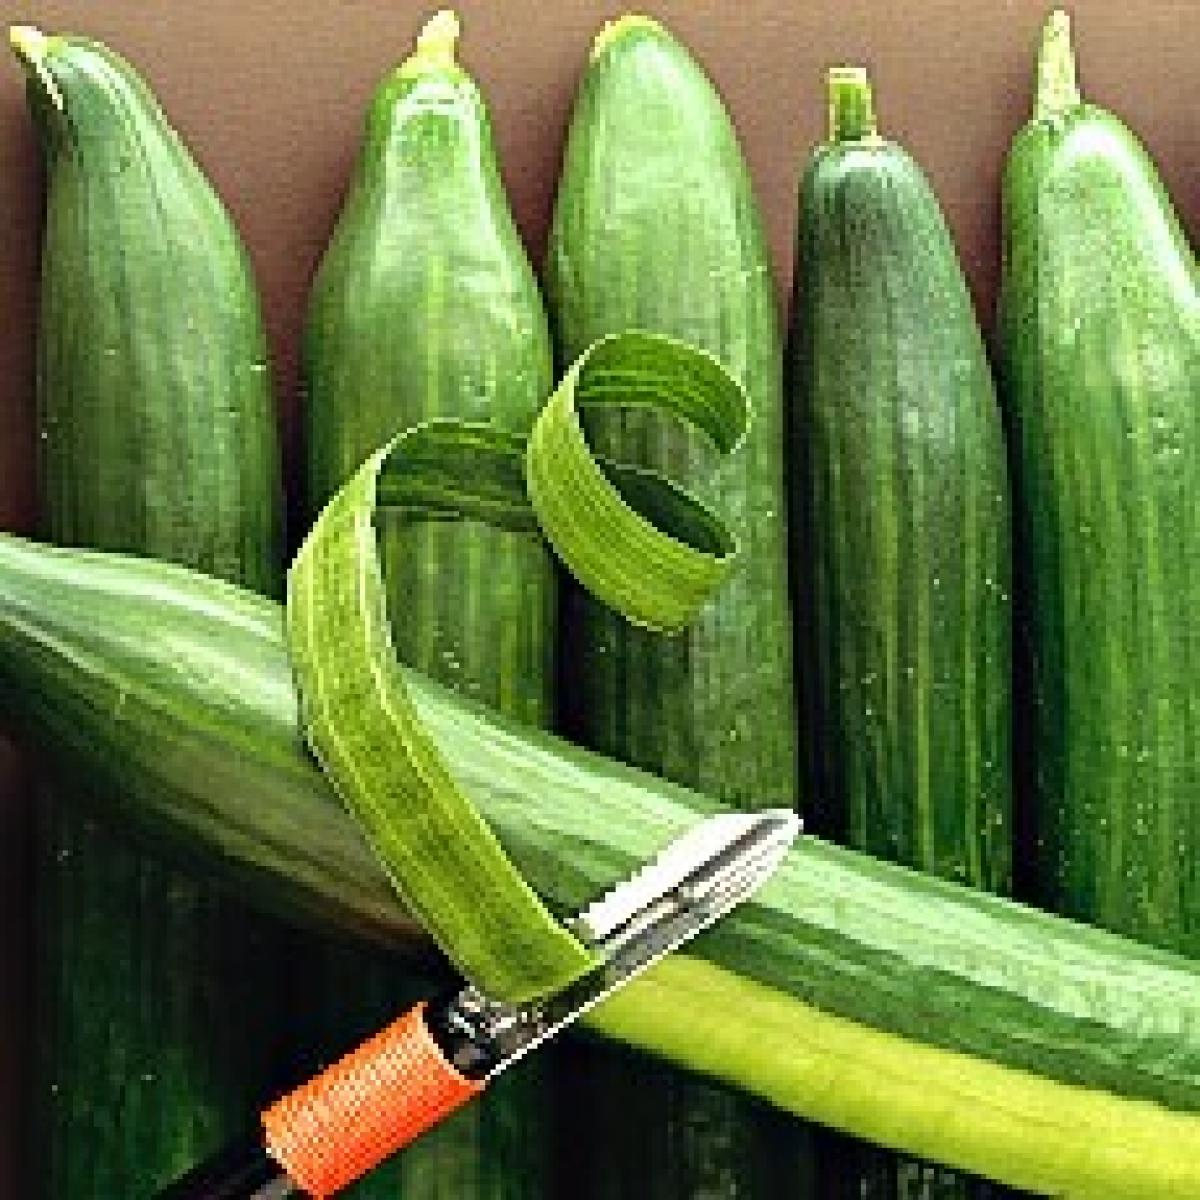 A picture of Delia's Marinated Cucumber and Sesame Salad recipe